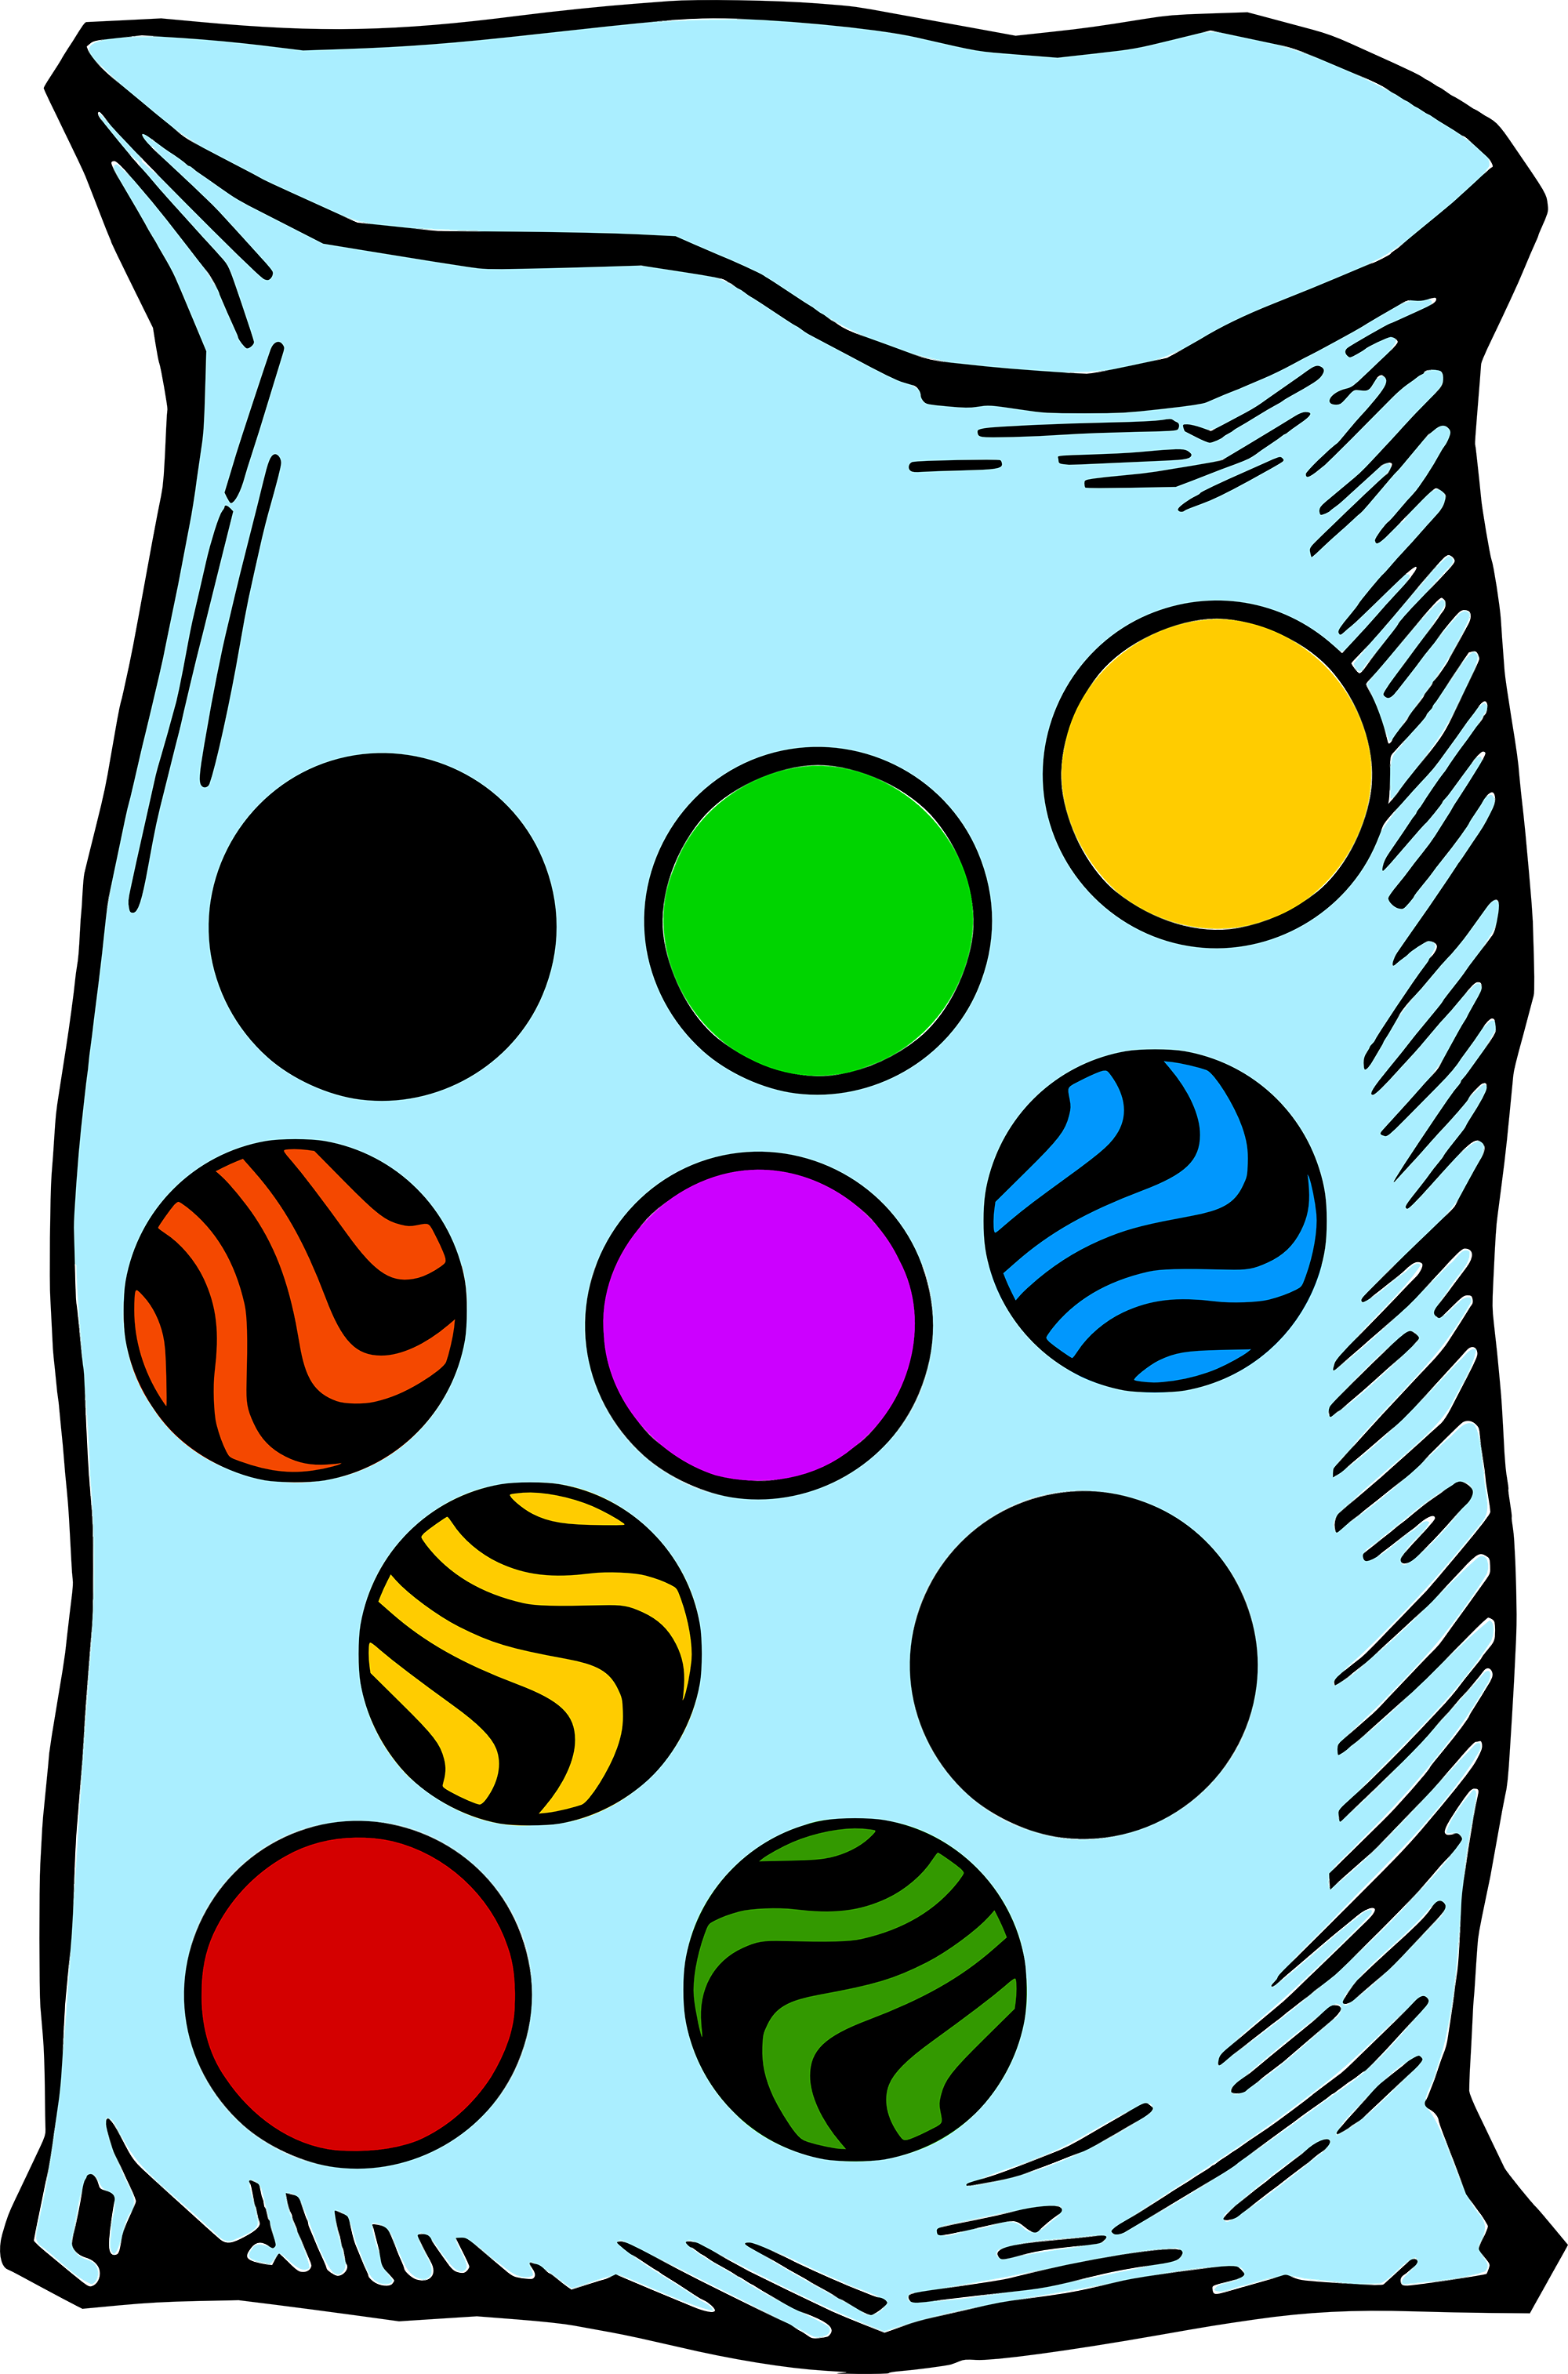 Marbles clipart real. Pdf at getdrawings com